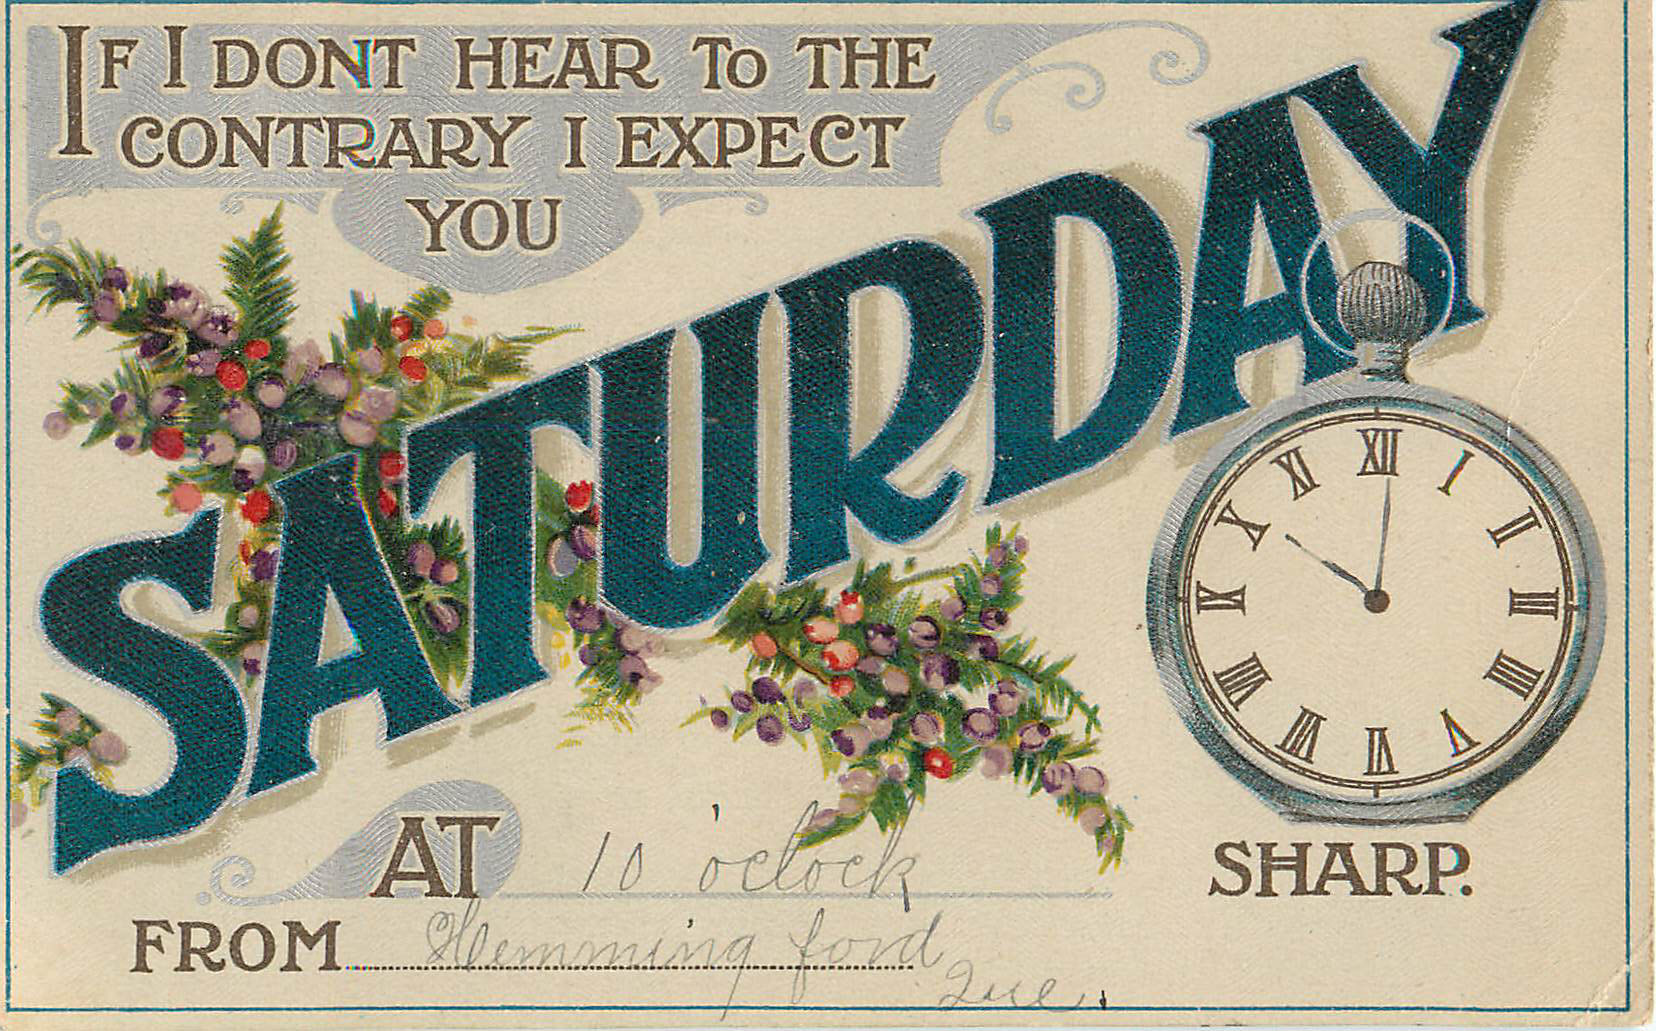 Expect You on Saturday - Appointment Card